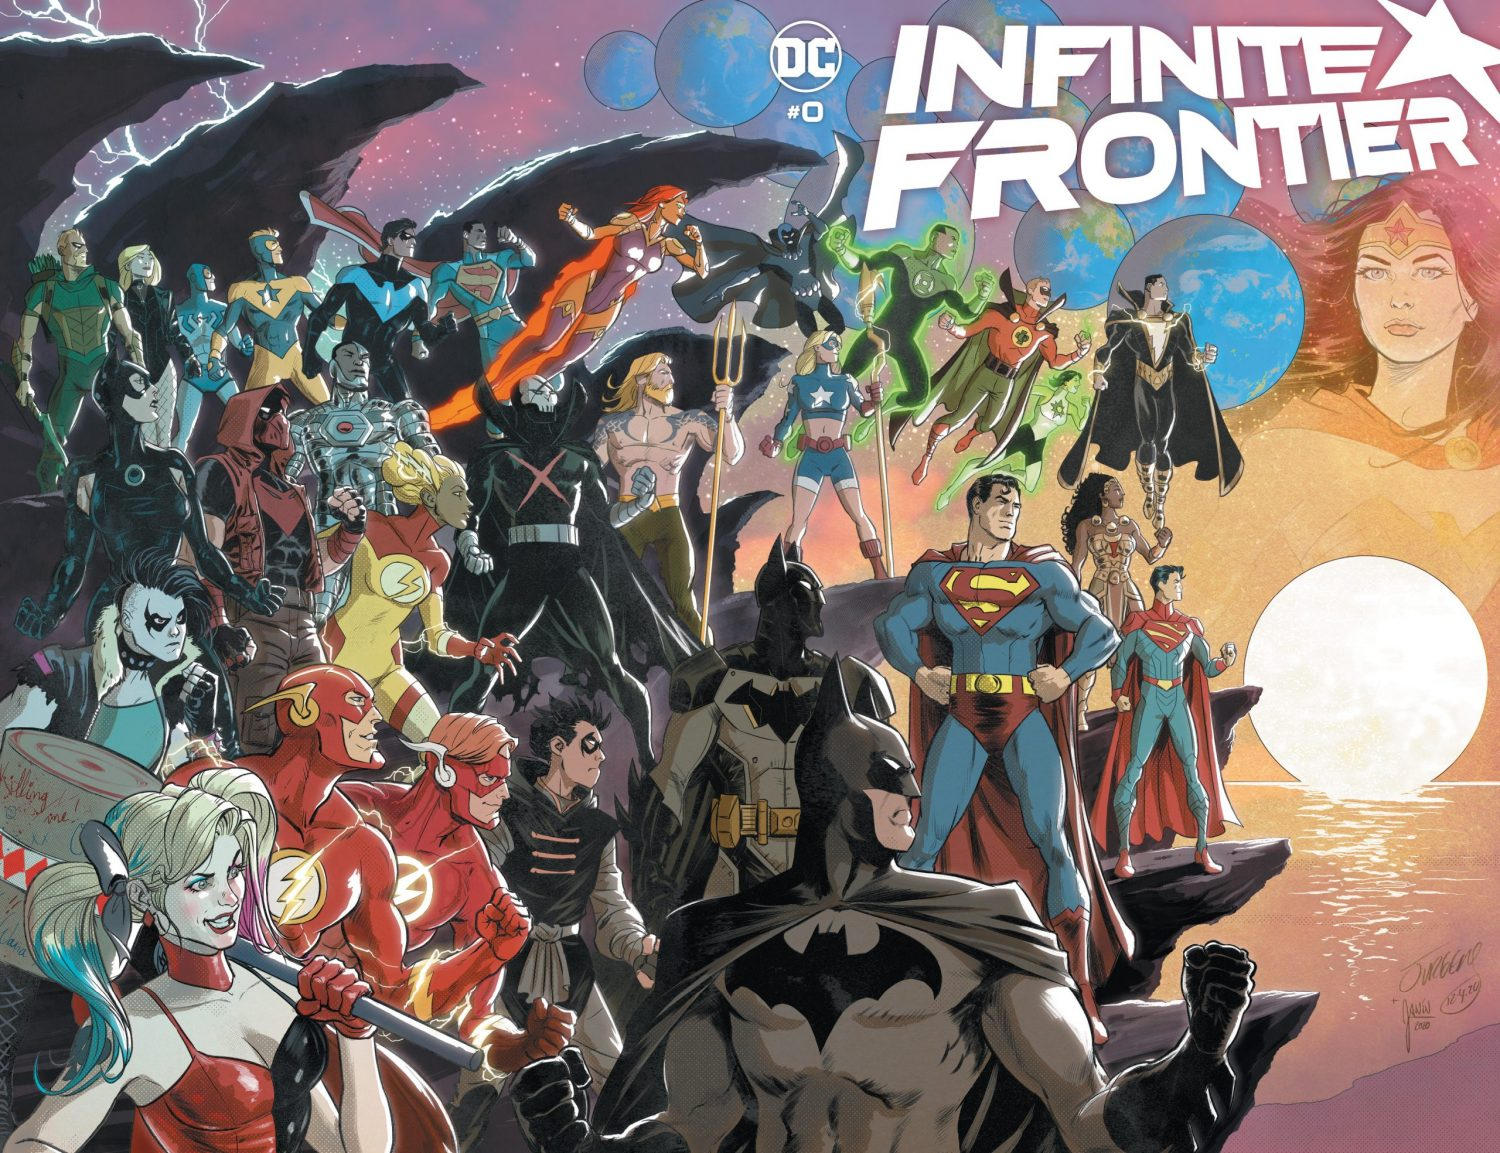 Infinite Frontier 0 cover by Dan Jurgens and Mikel Janin